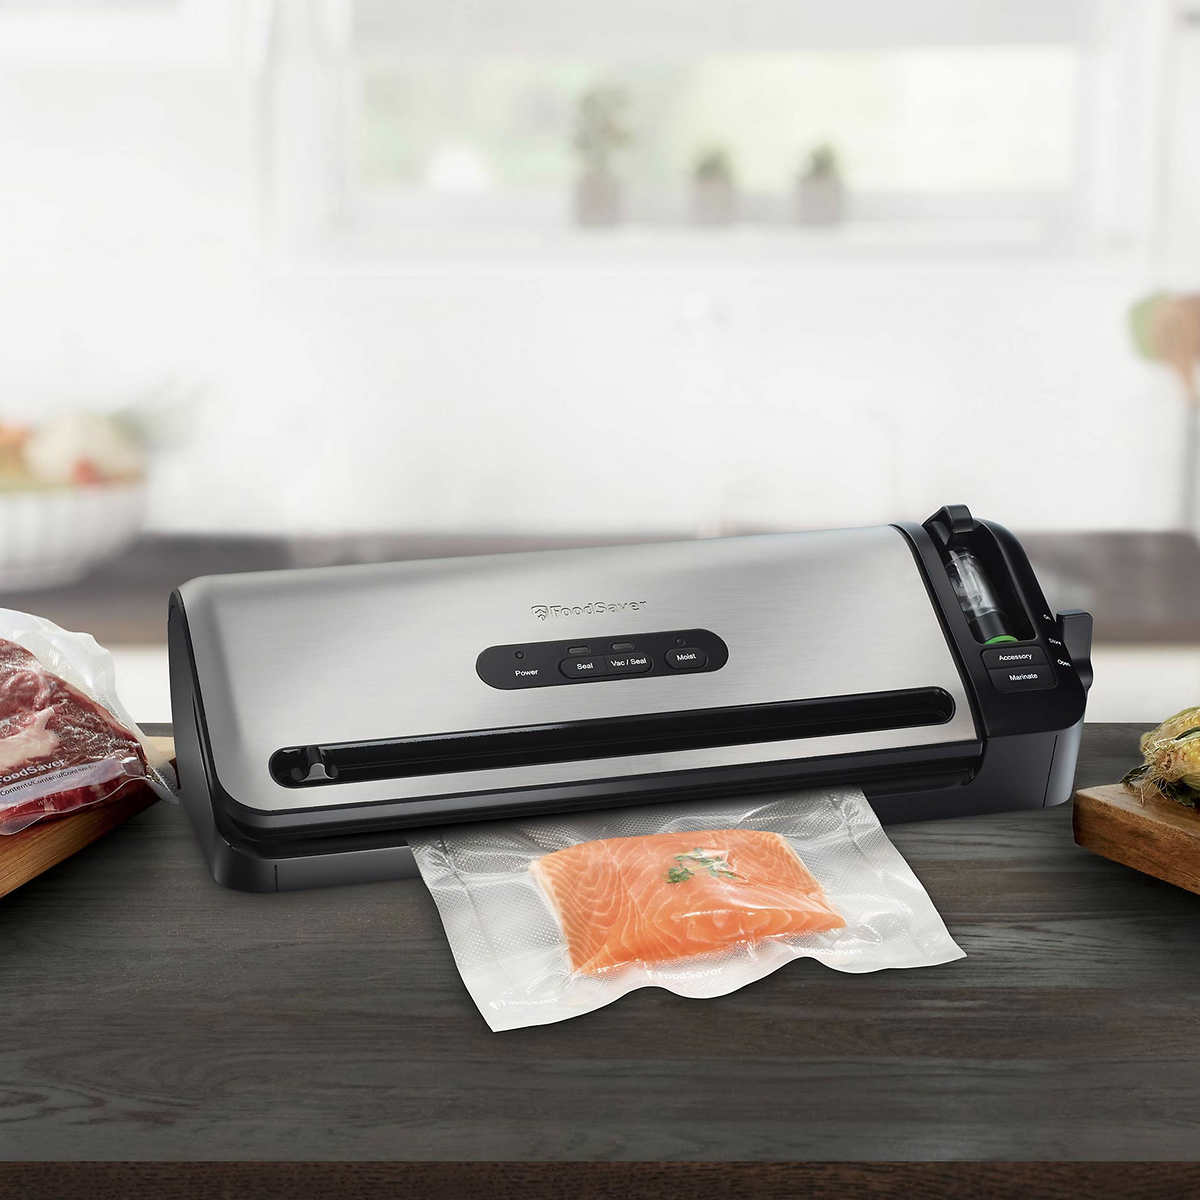 Costco Foodsaver 2 In 1 Vacuum Sealing System 100